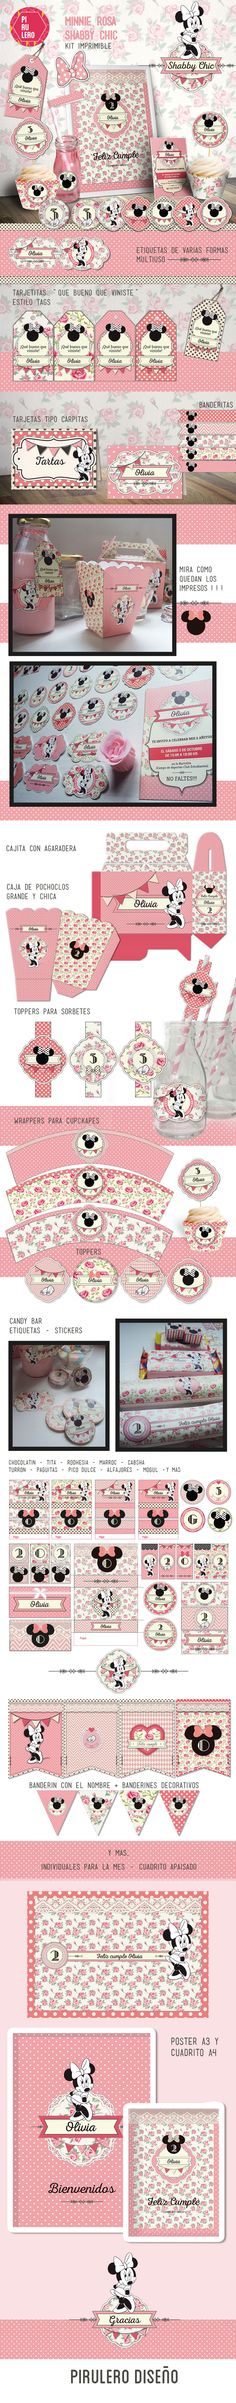 Kit imprimible Minnie Shabby Chic Rosa #kitimprimible #shabbychic #shabby #minnie